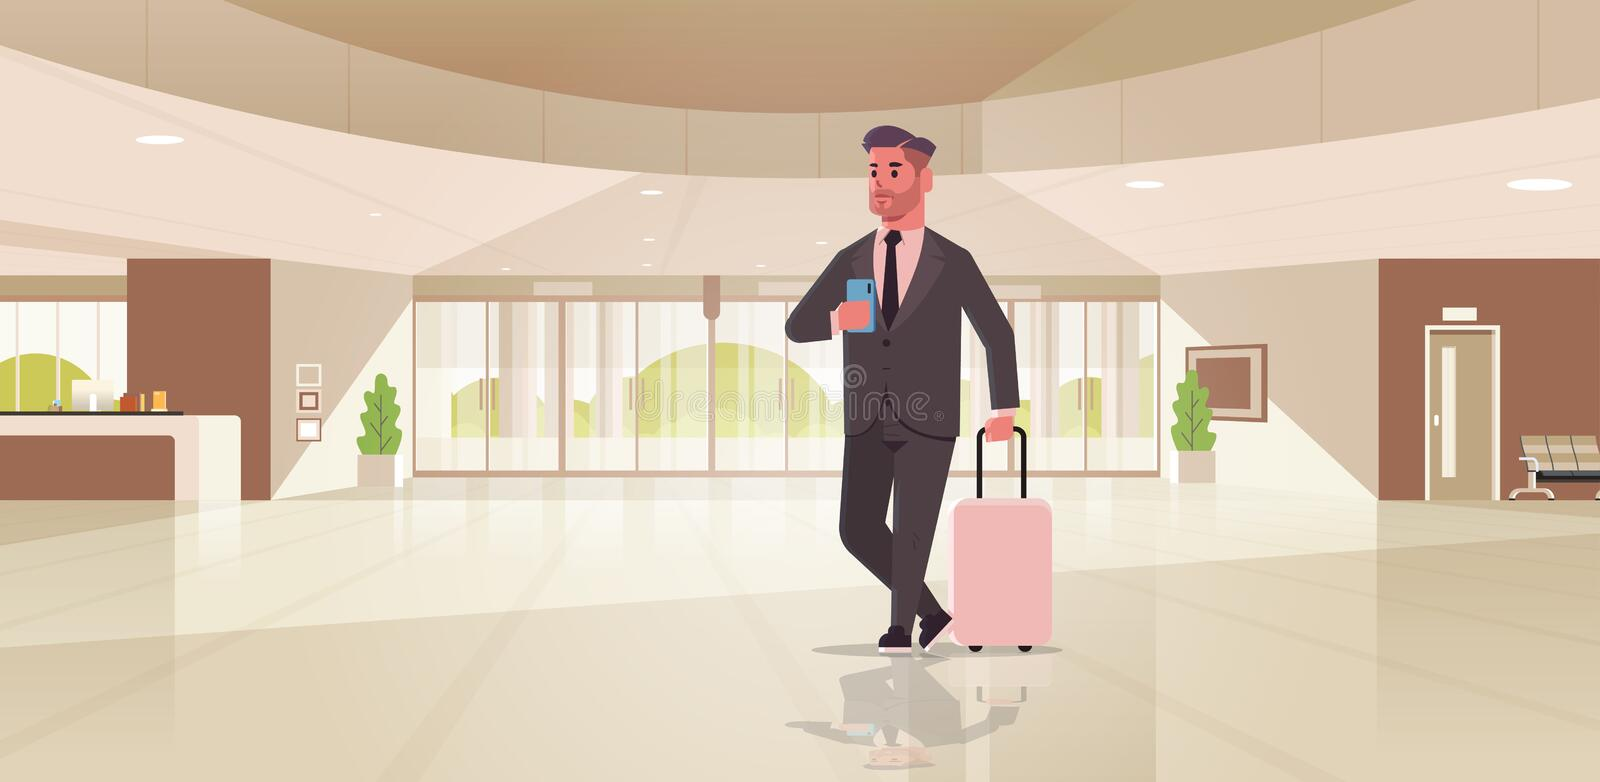 Businessman with luggage modern reception area business man holding suitcase guy standing in lobby contemporary hotel vector illustration